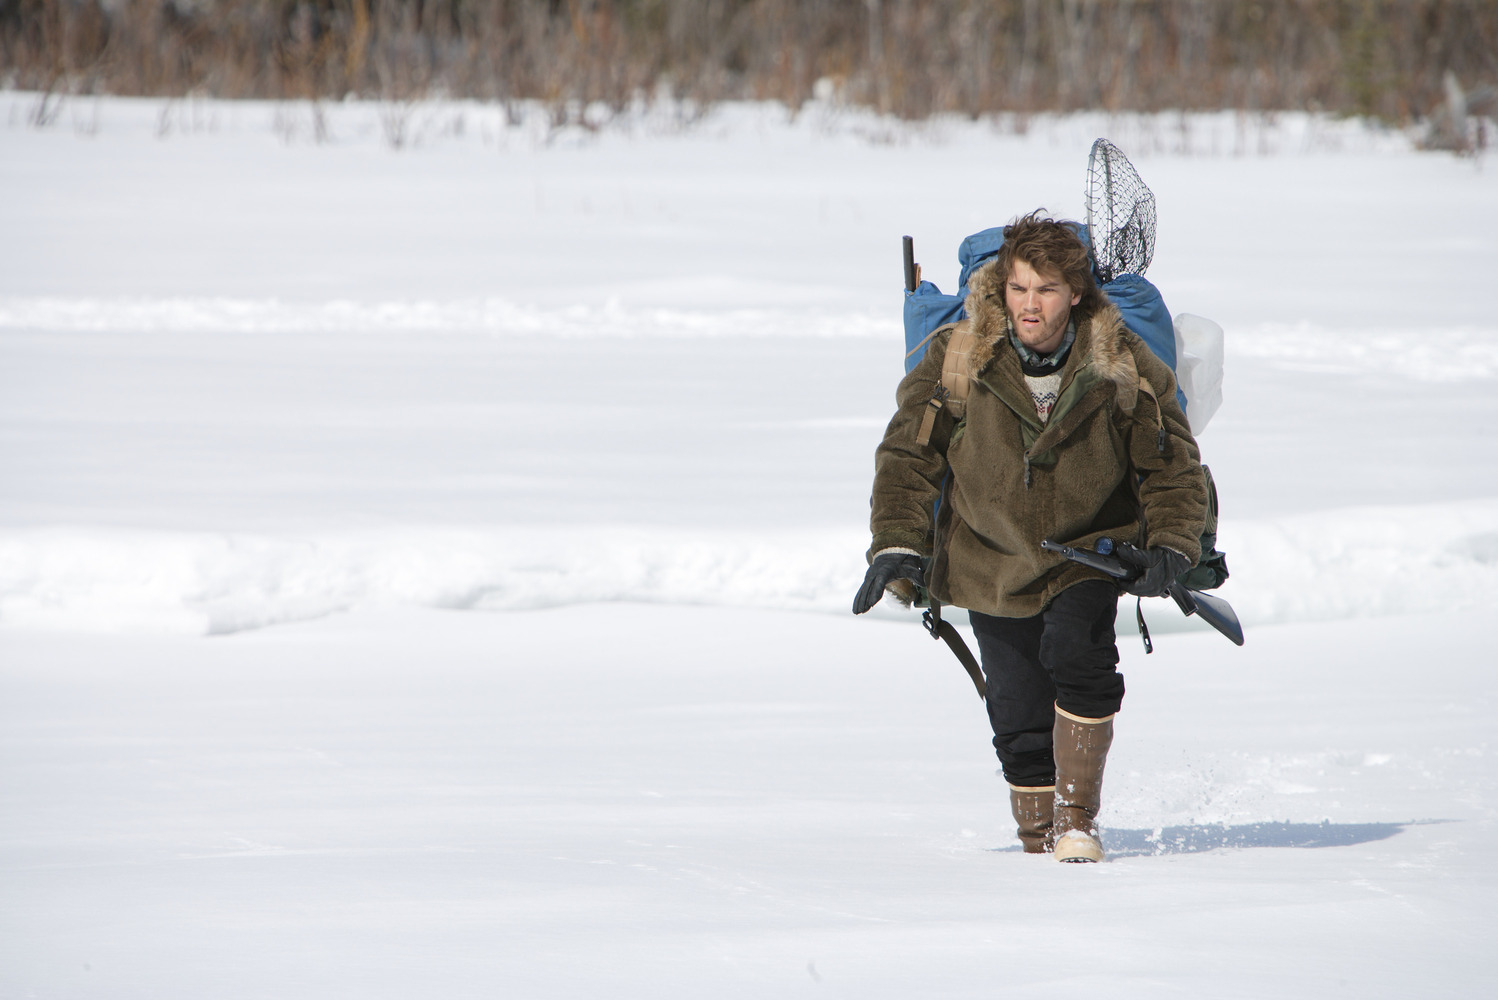 essays about chris mccandless into the wild Christopher mccandless: into the wild rich man on his way to law school to become a street urchin in the wild he left chris mccandless and became alexander.